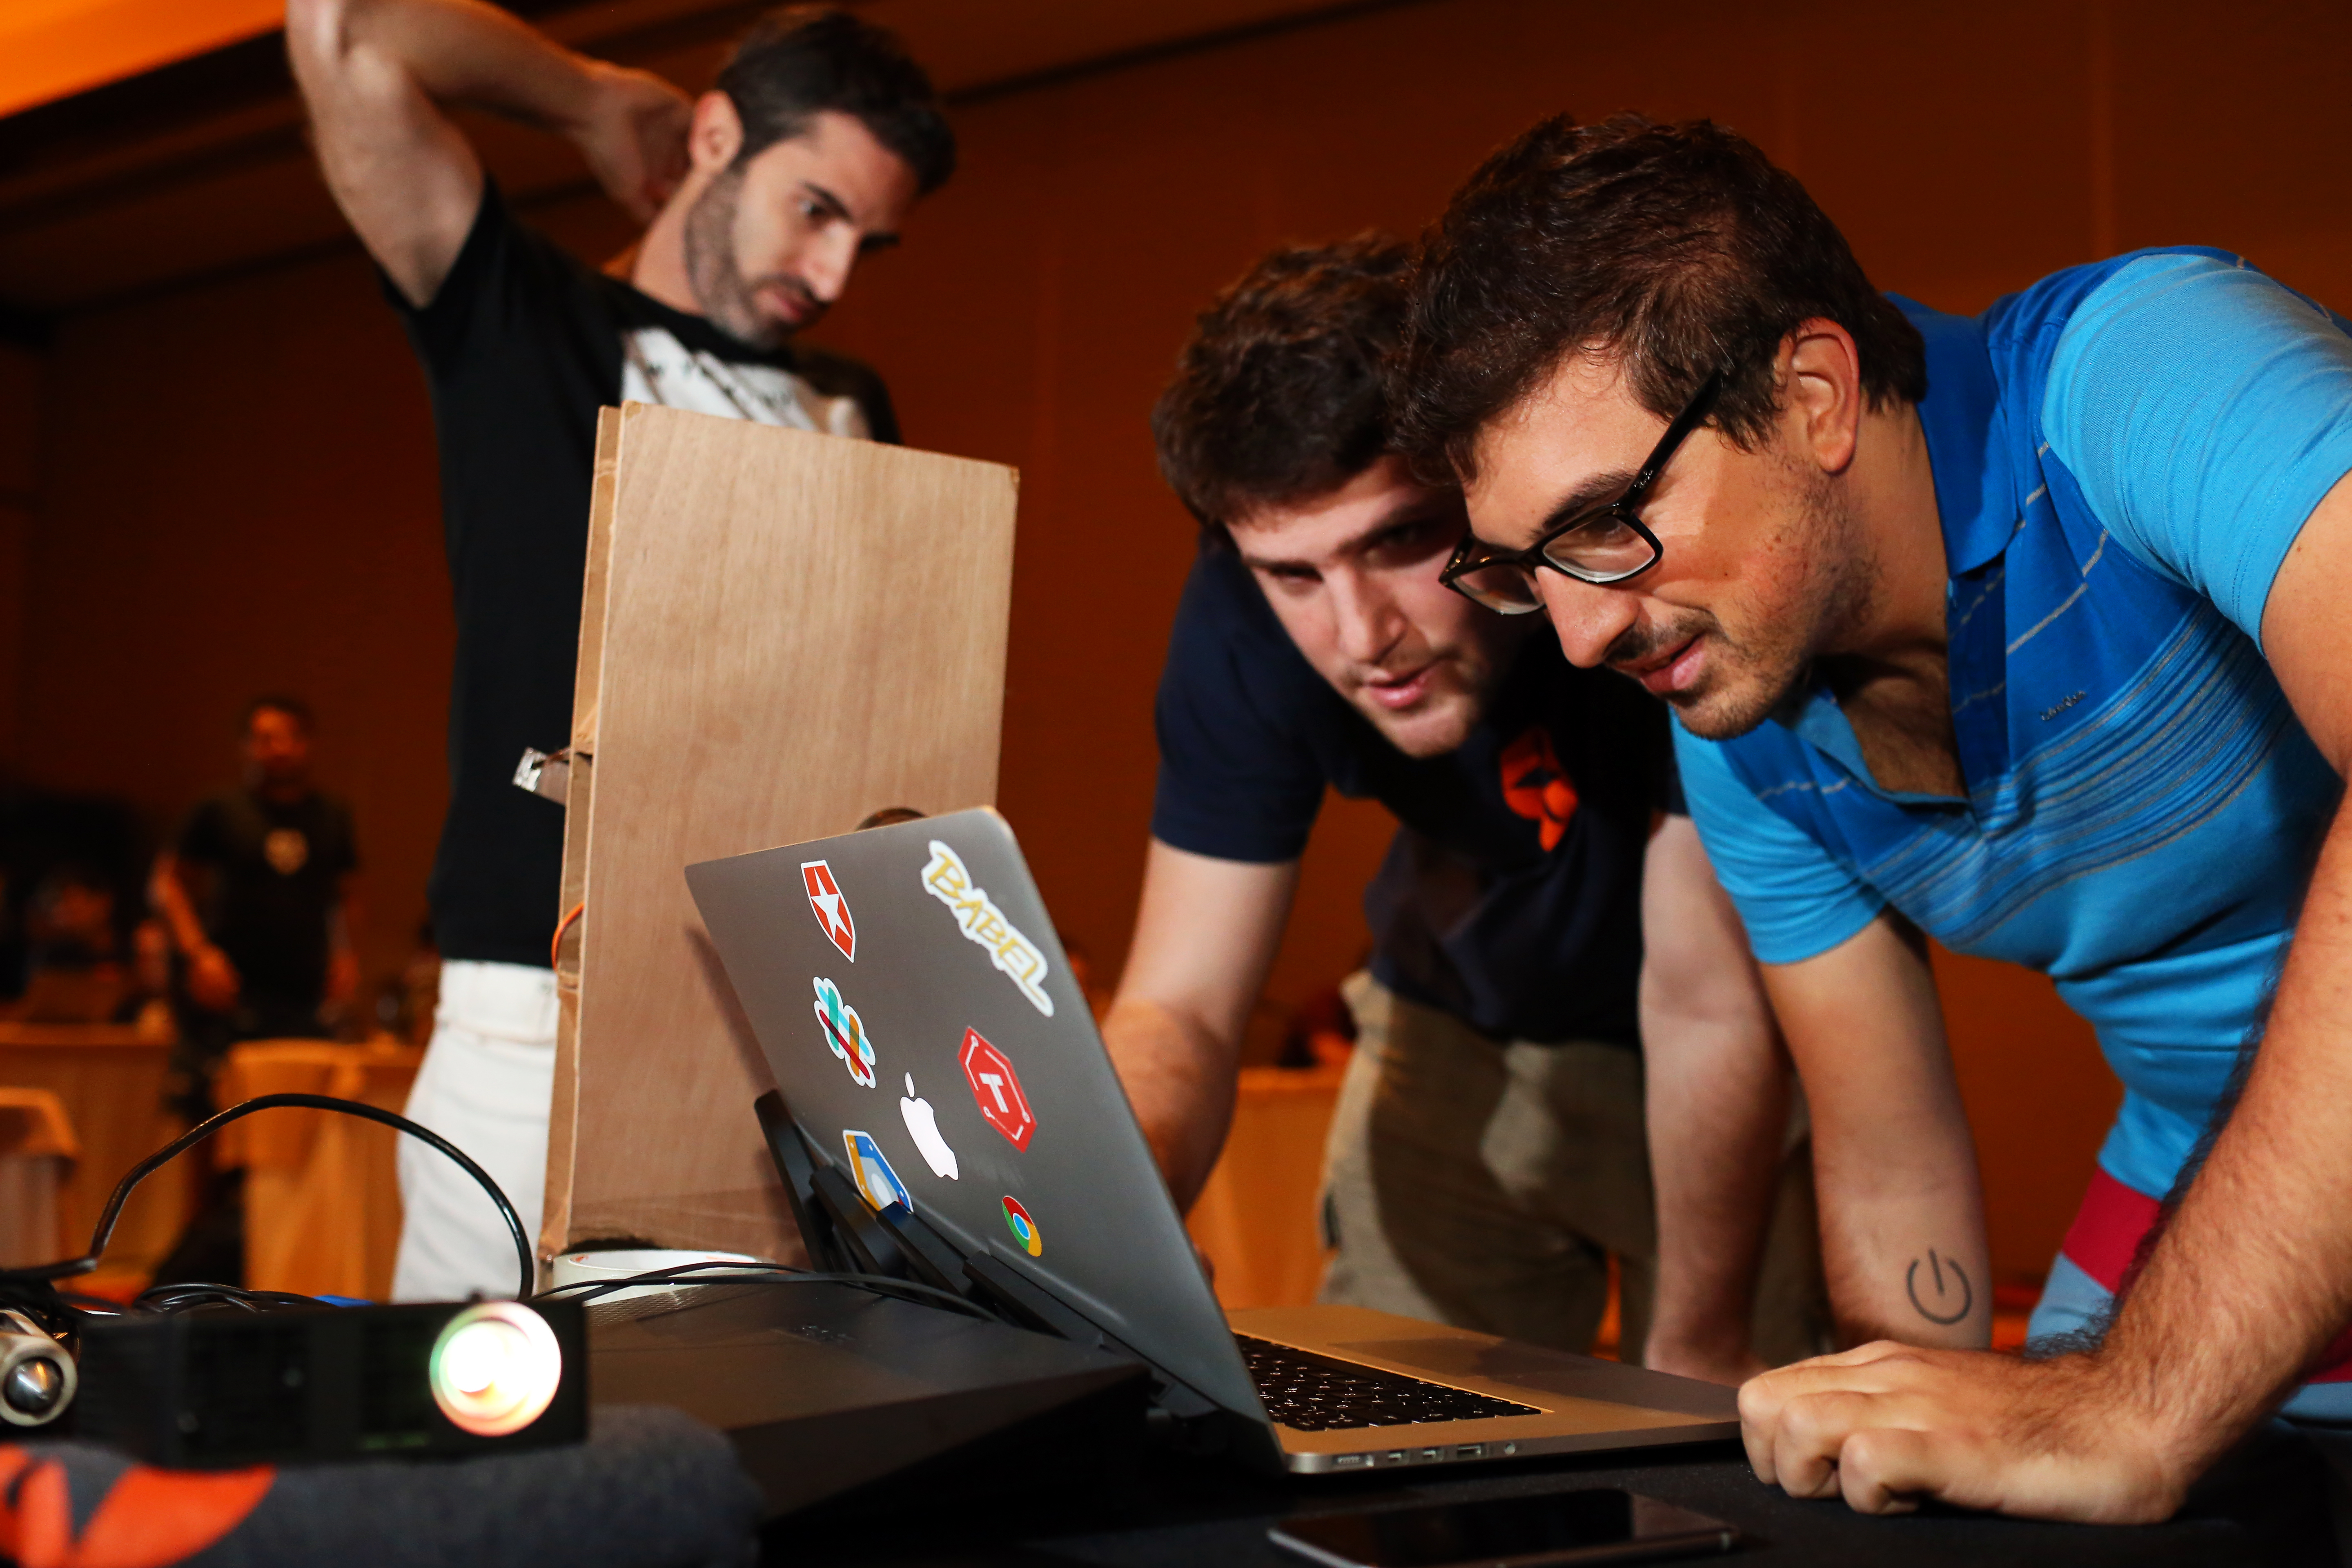 """Martin """"Gonto"""" Gontovnikas leading a hackathon activity during Auth0 company offsite"""